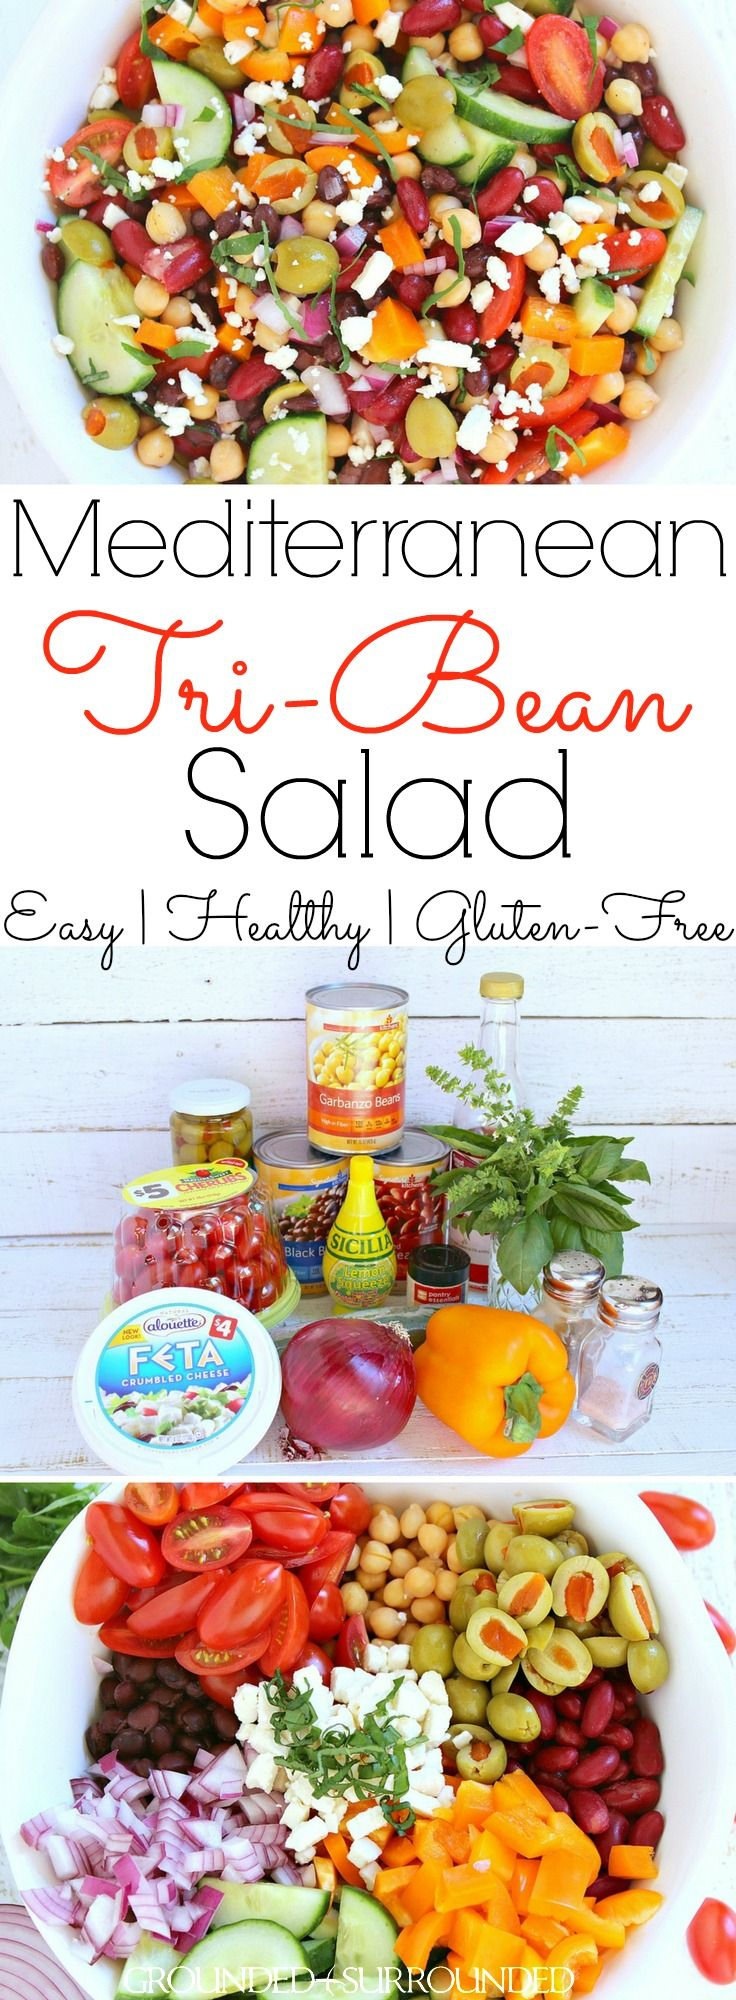 Kidney Bean Salads on Pinterest | Kidney Beans, Beans Salad and Beans ...